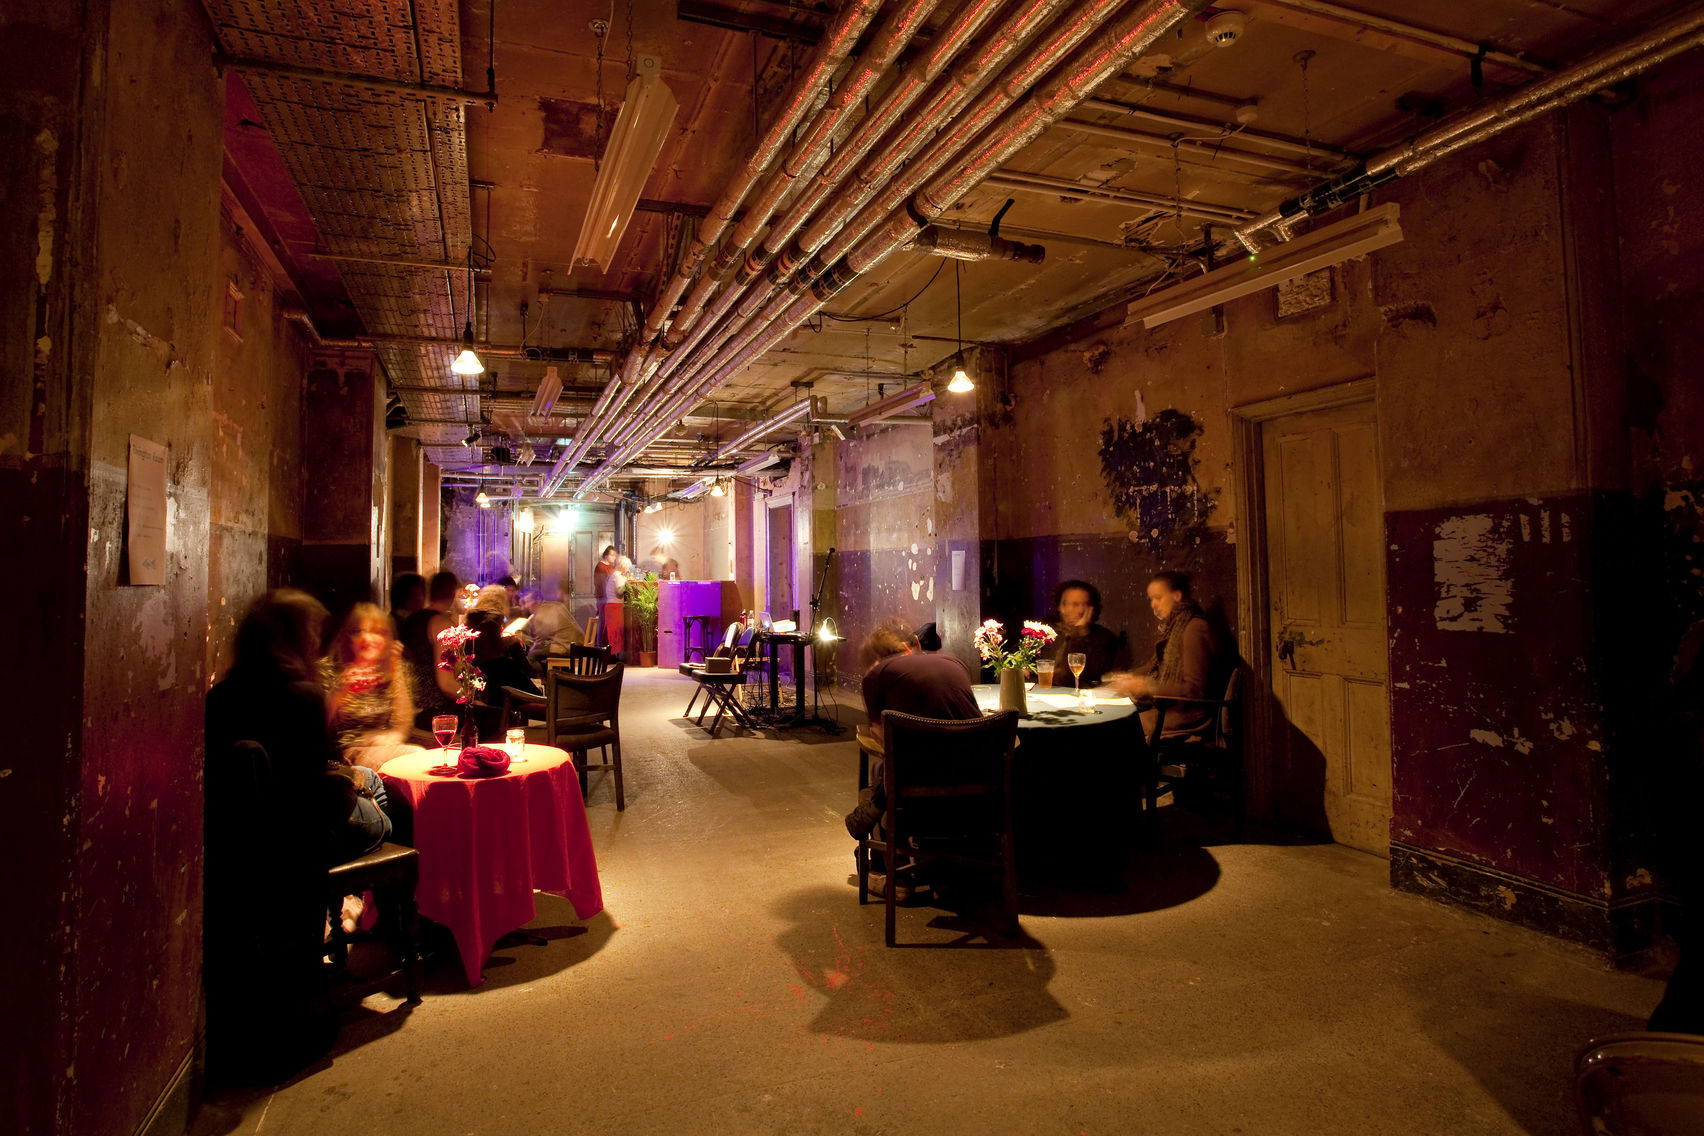 Underground basement bar with lots of tables with people eating and drinking and bright lights in the background